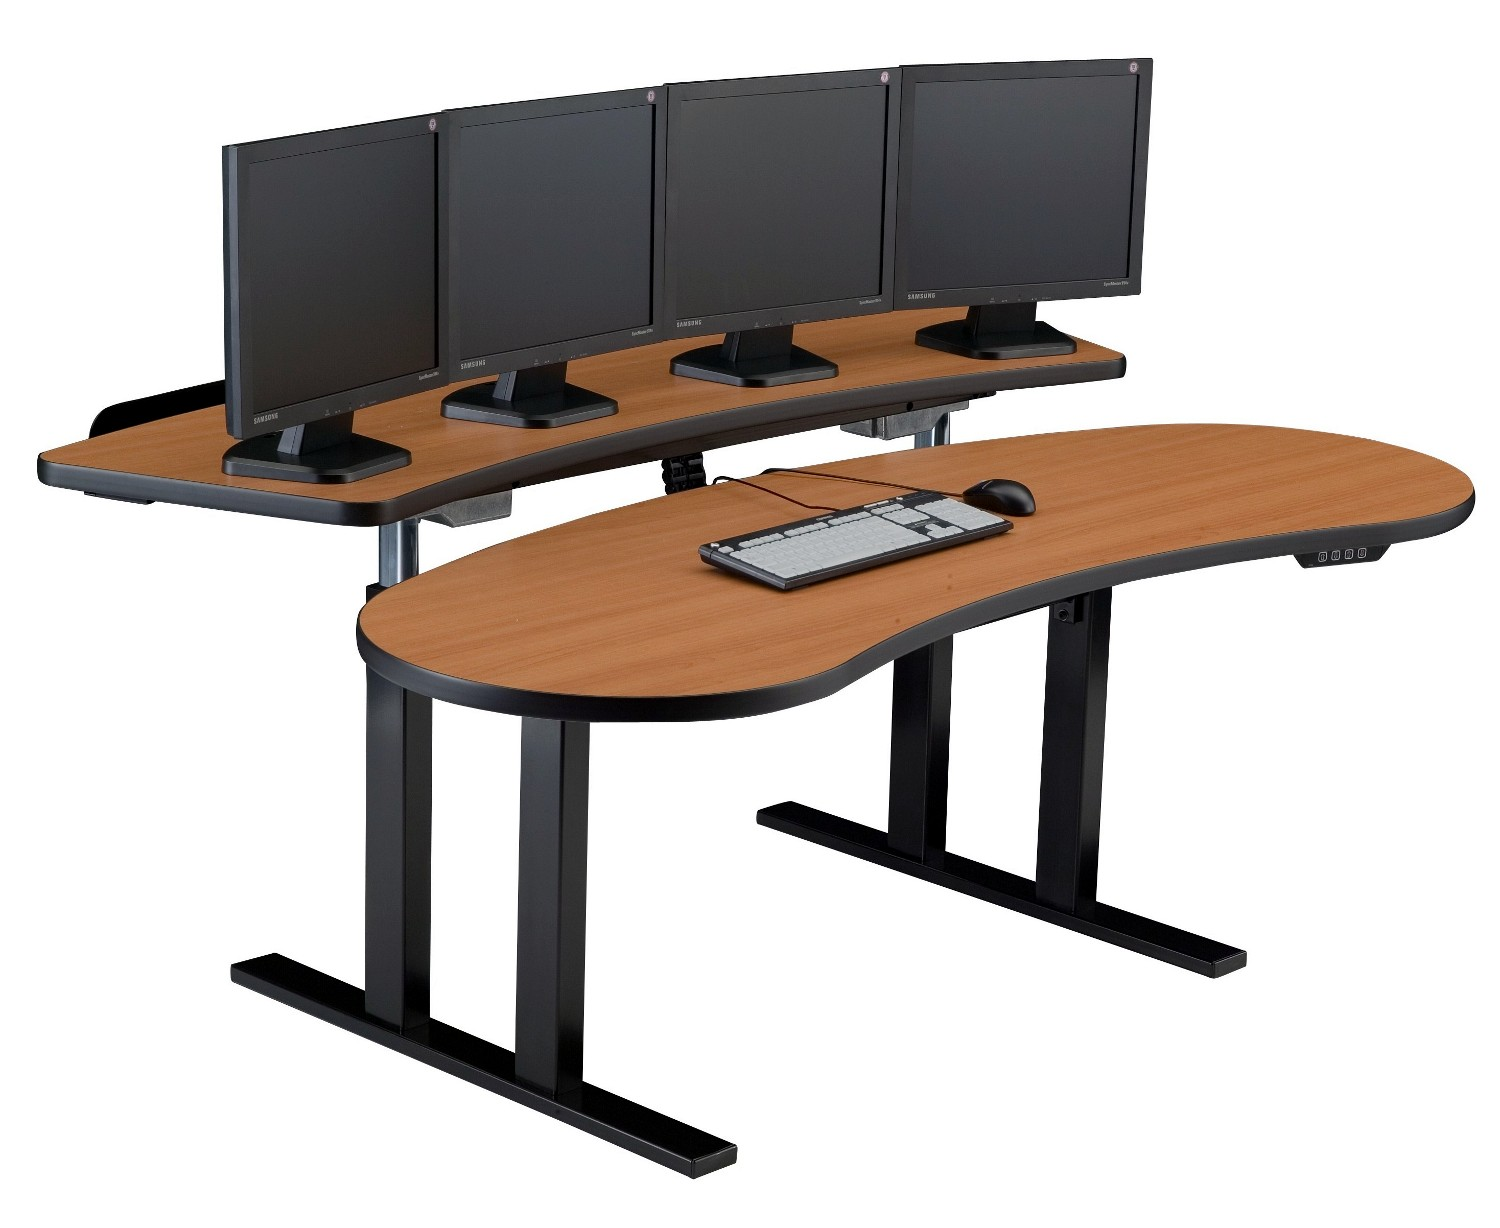 Furniture + Stand Up Desk: // PACS Sit Stand Adjustable Computer Desk